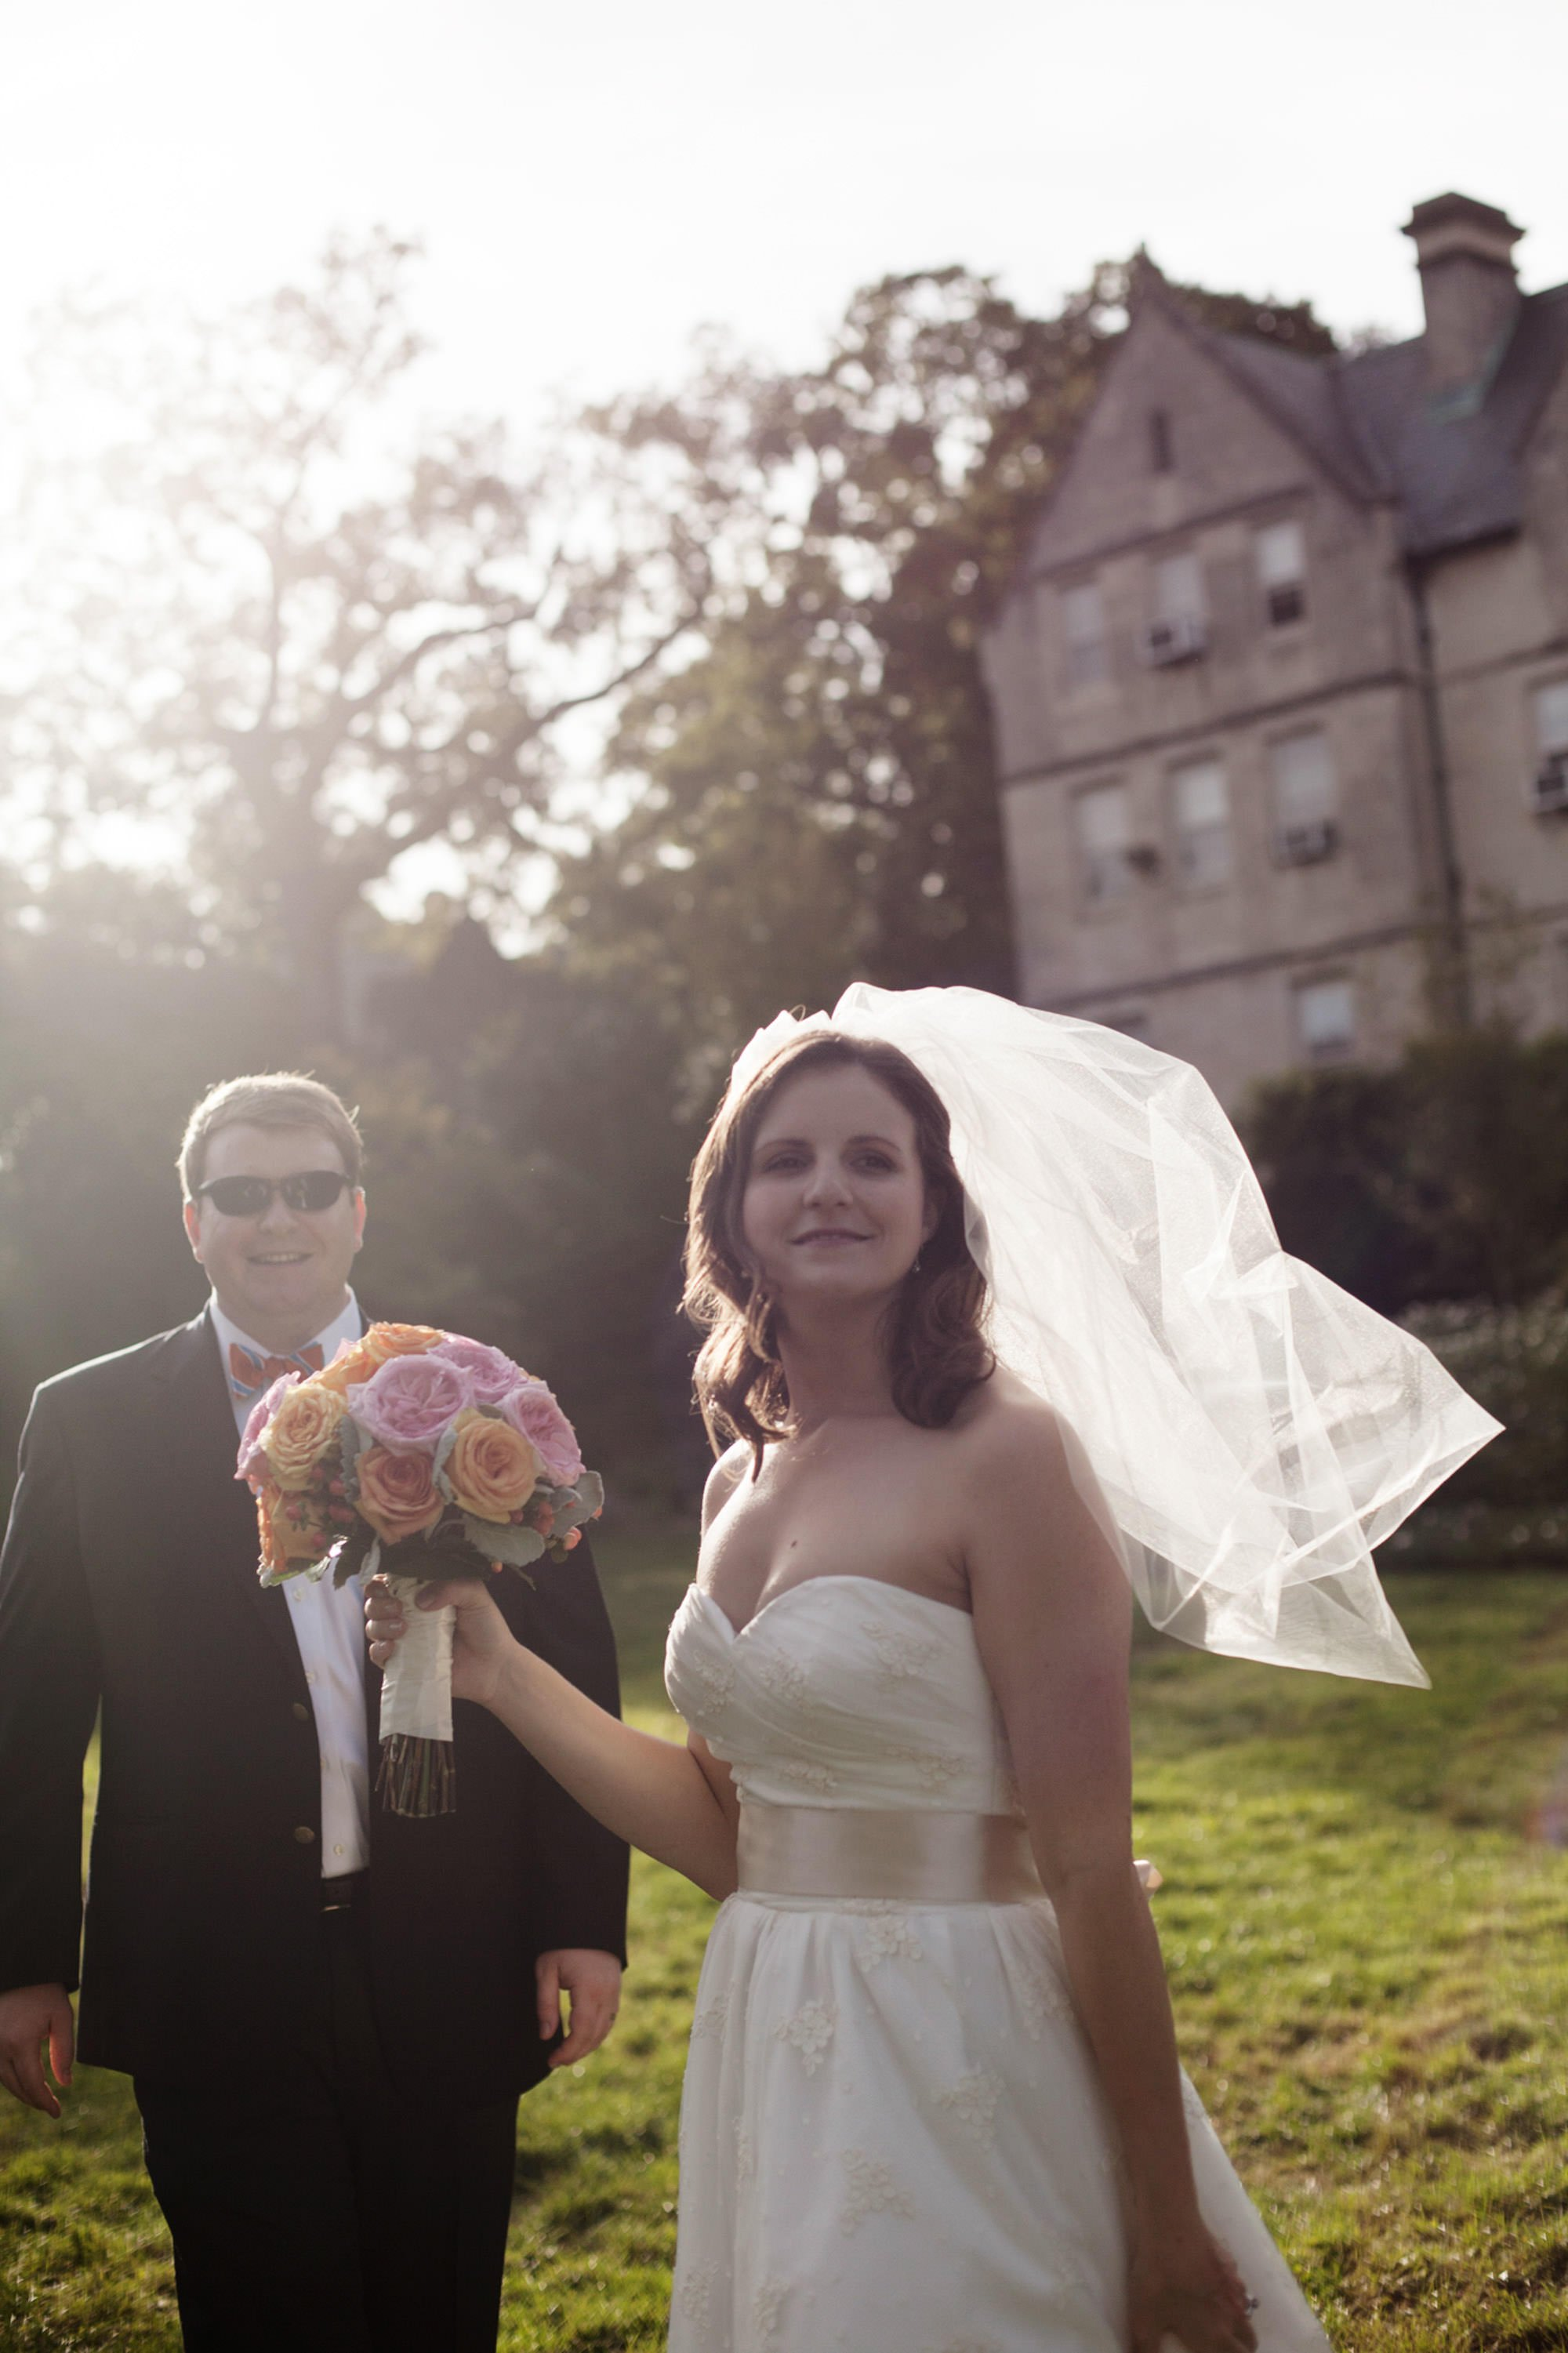 The bride stands in the flower garden following her Washington National Cathedral wedding ceremony.